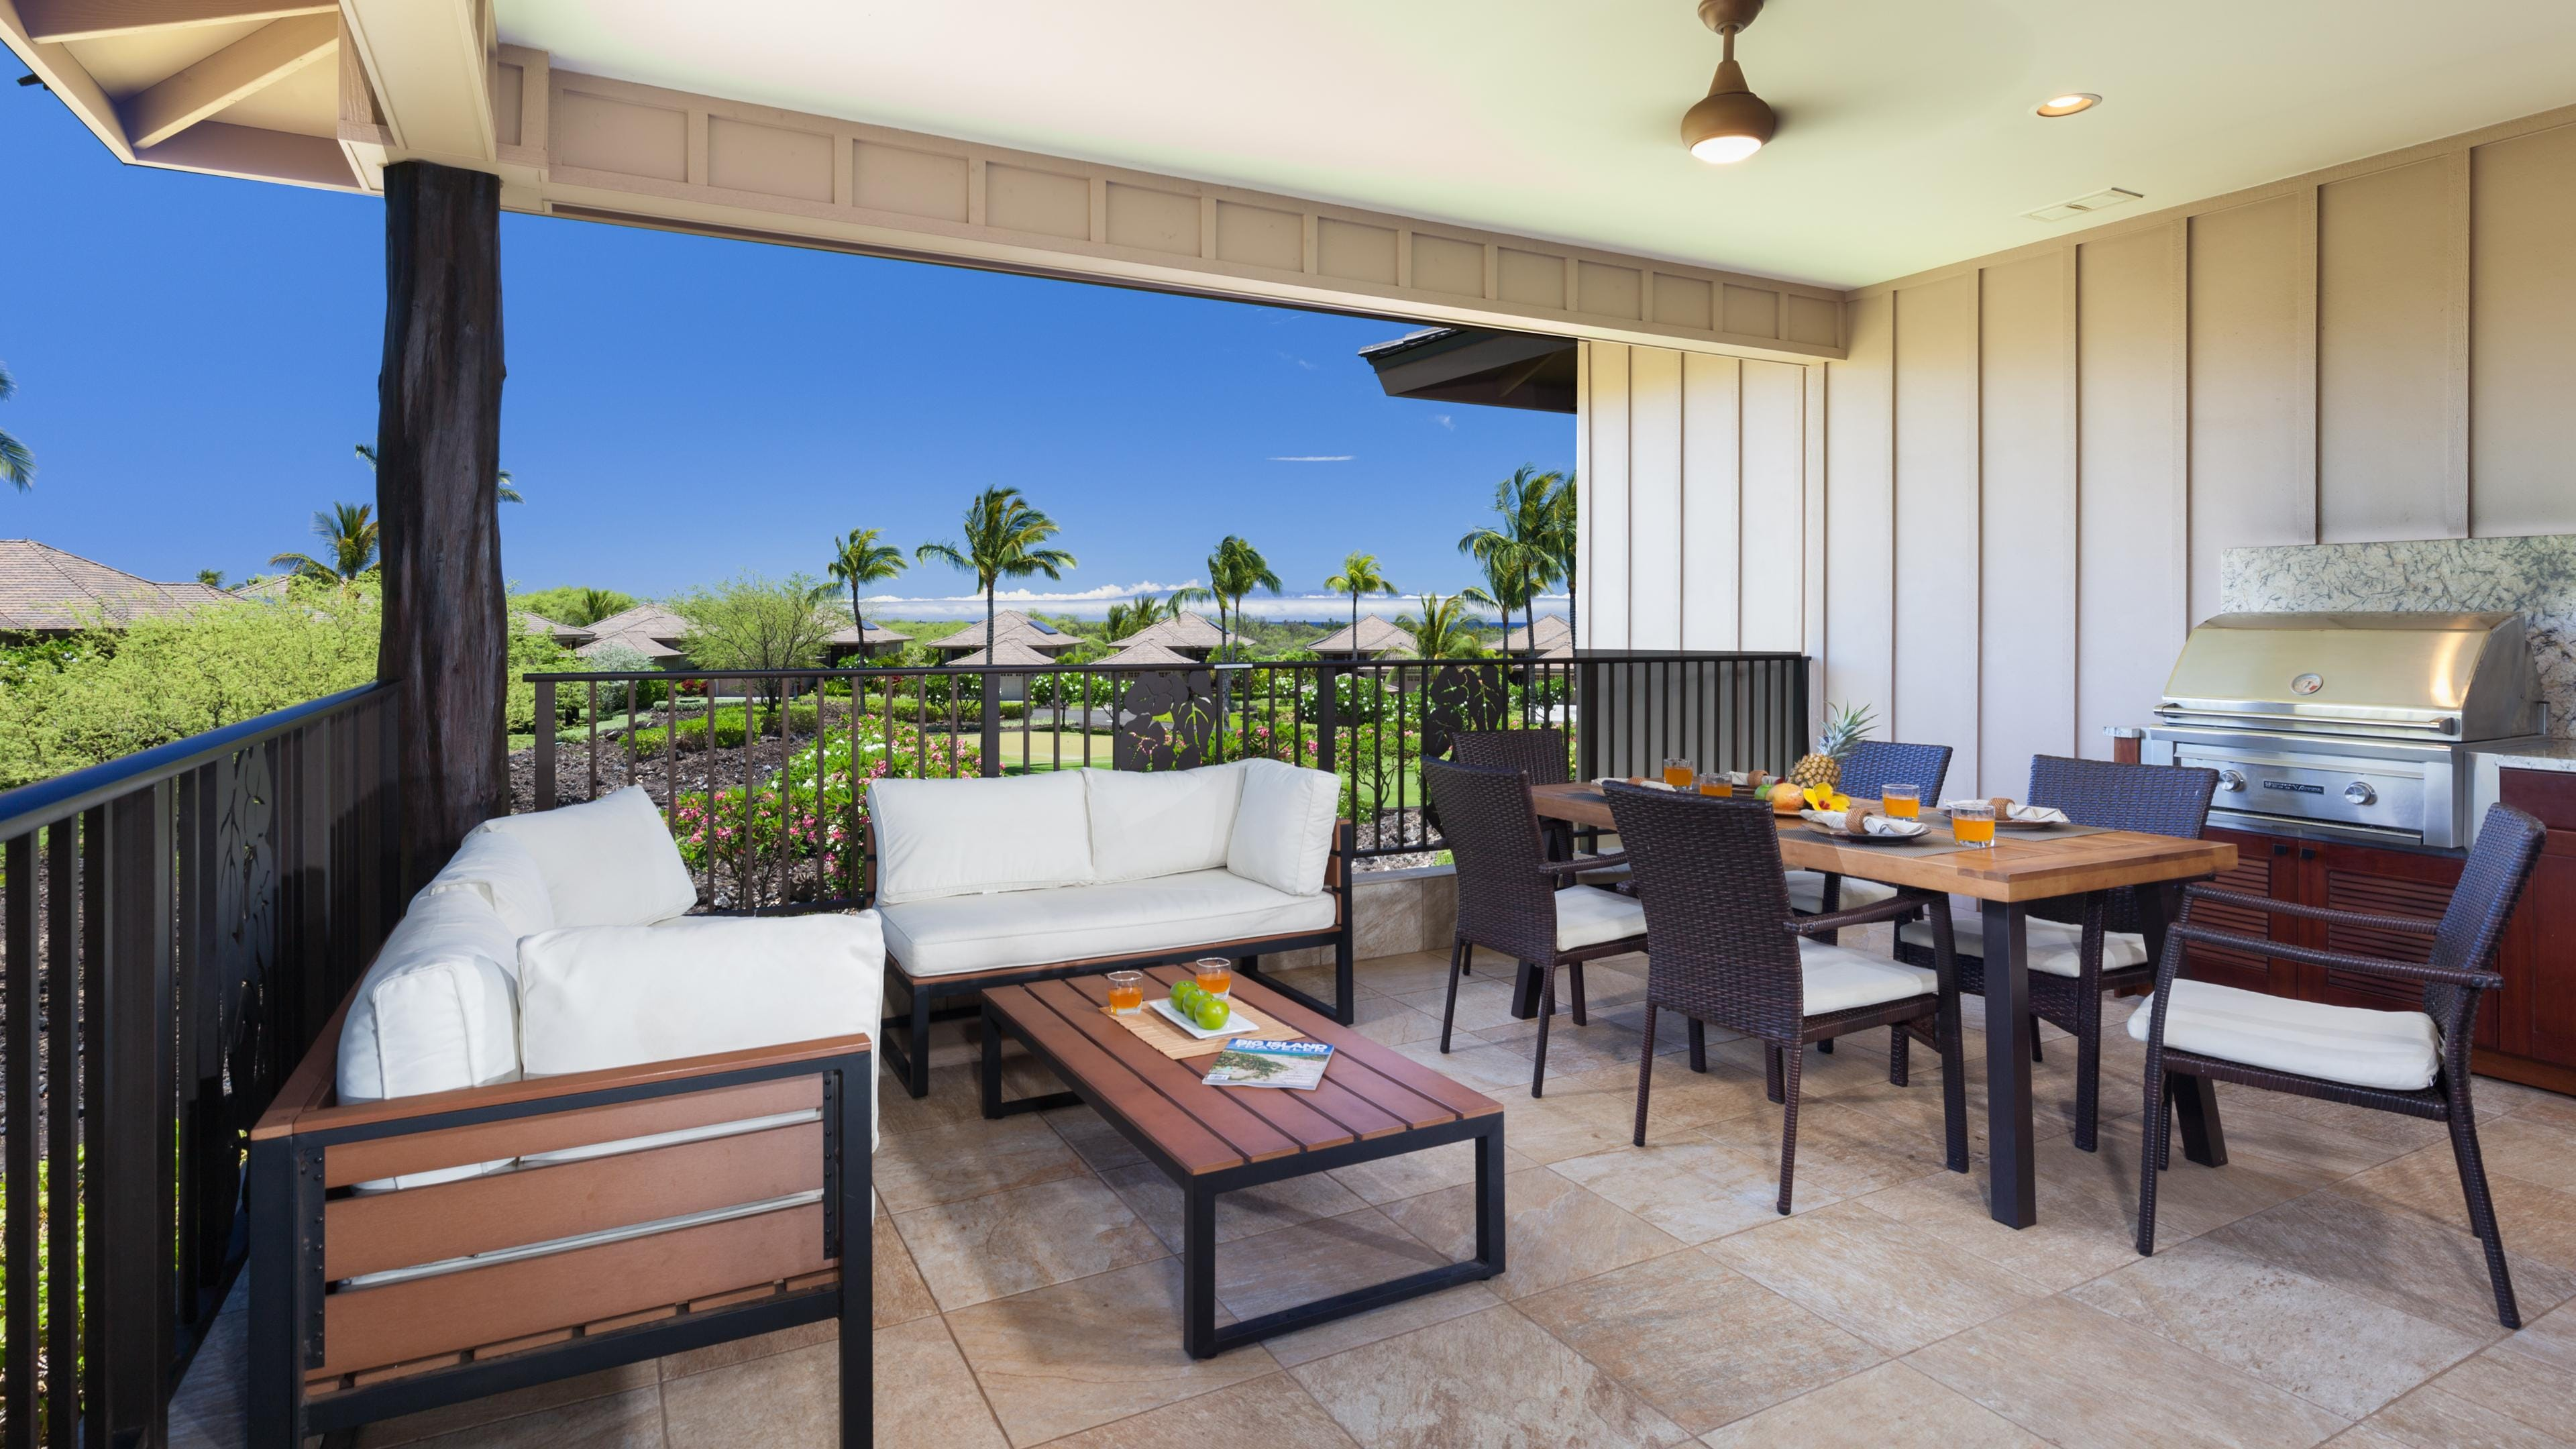 Large covered lanai with private grill